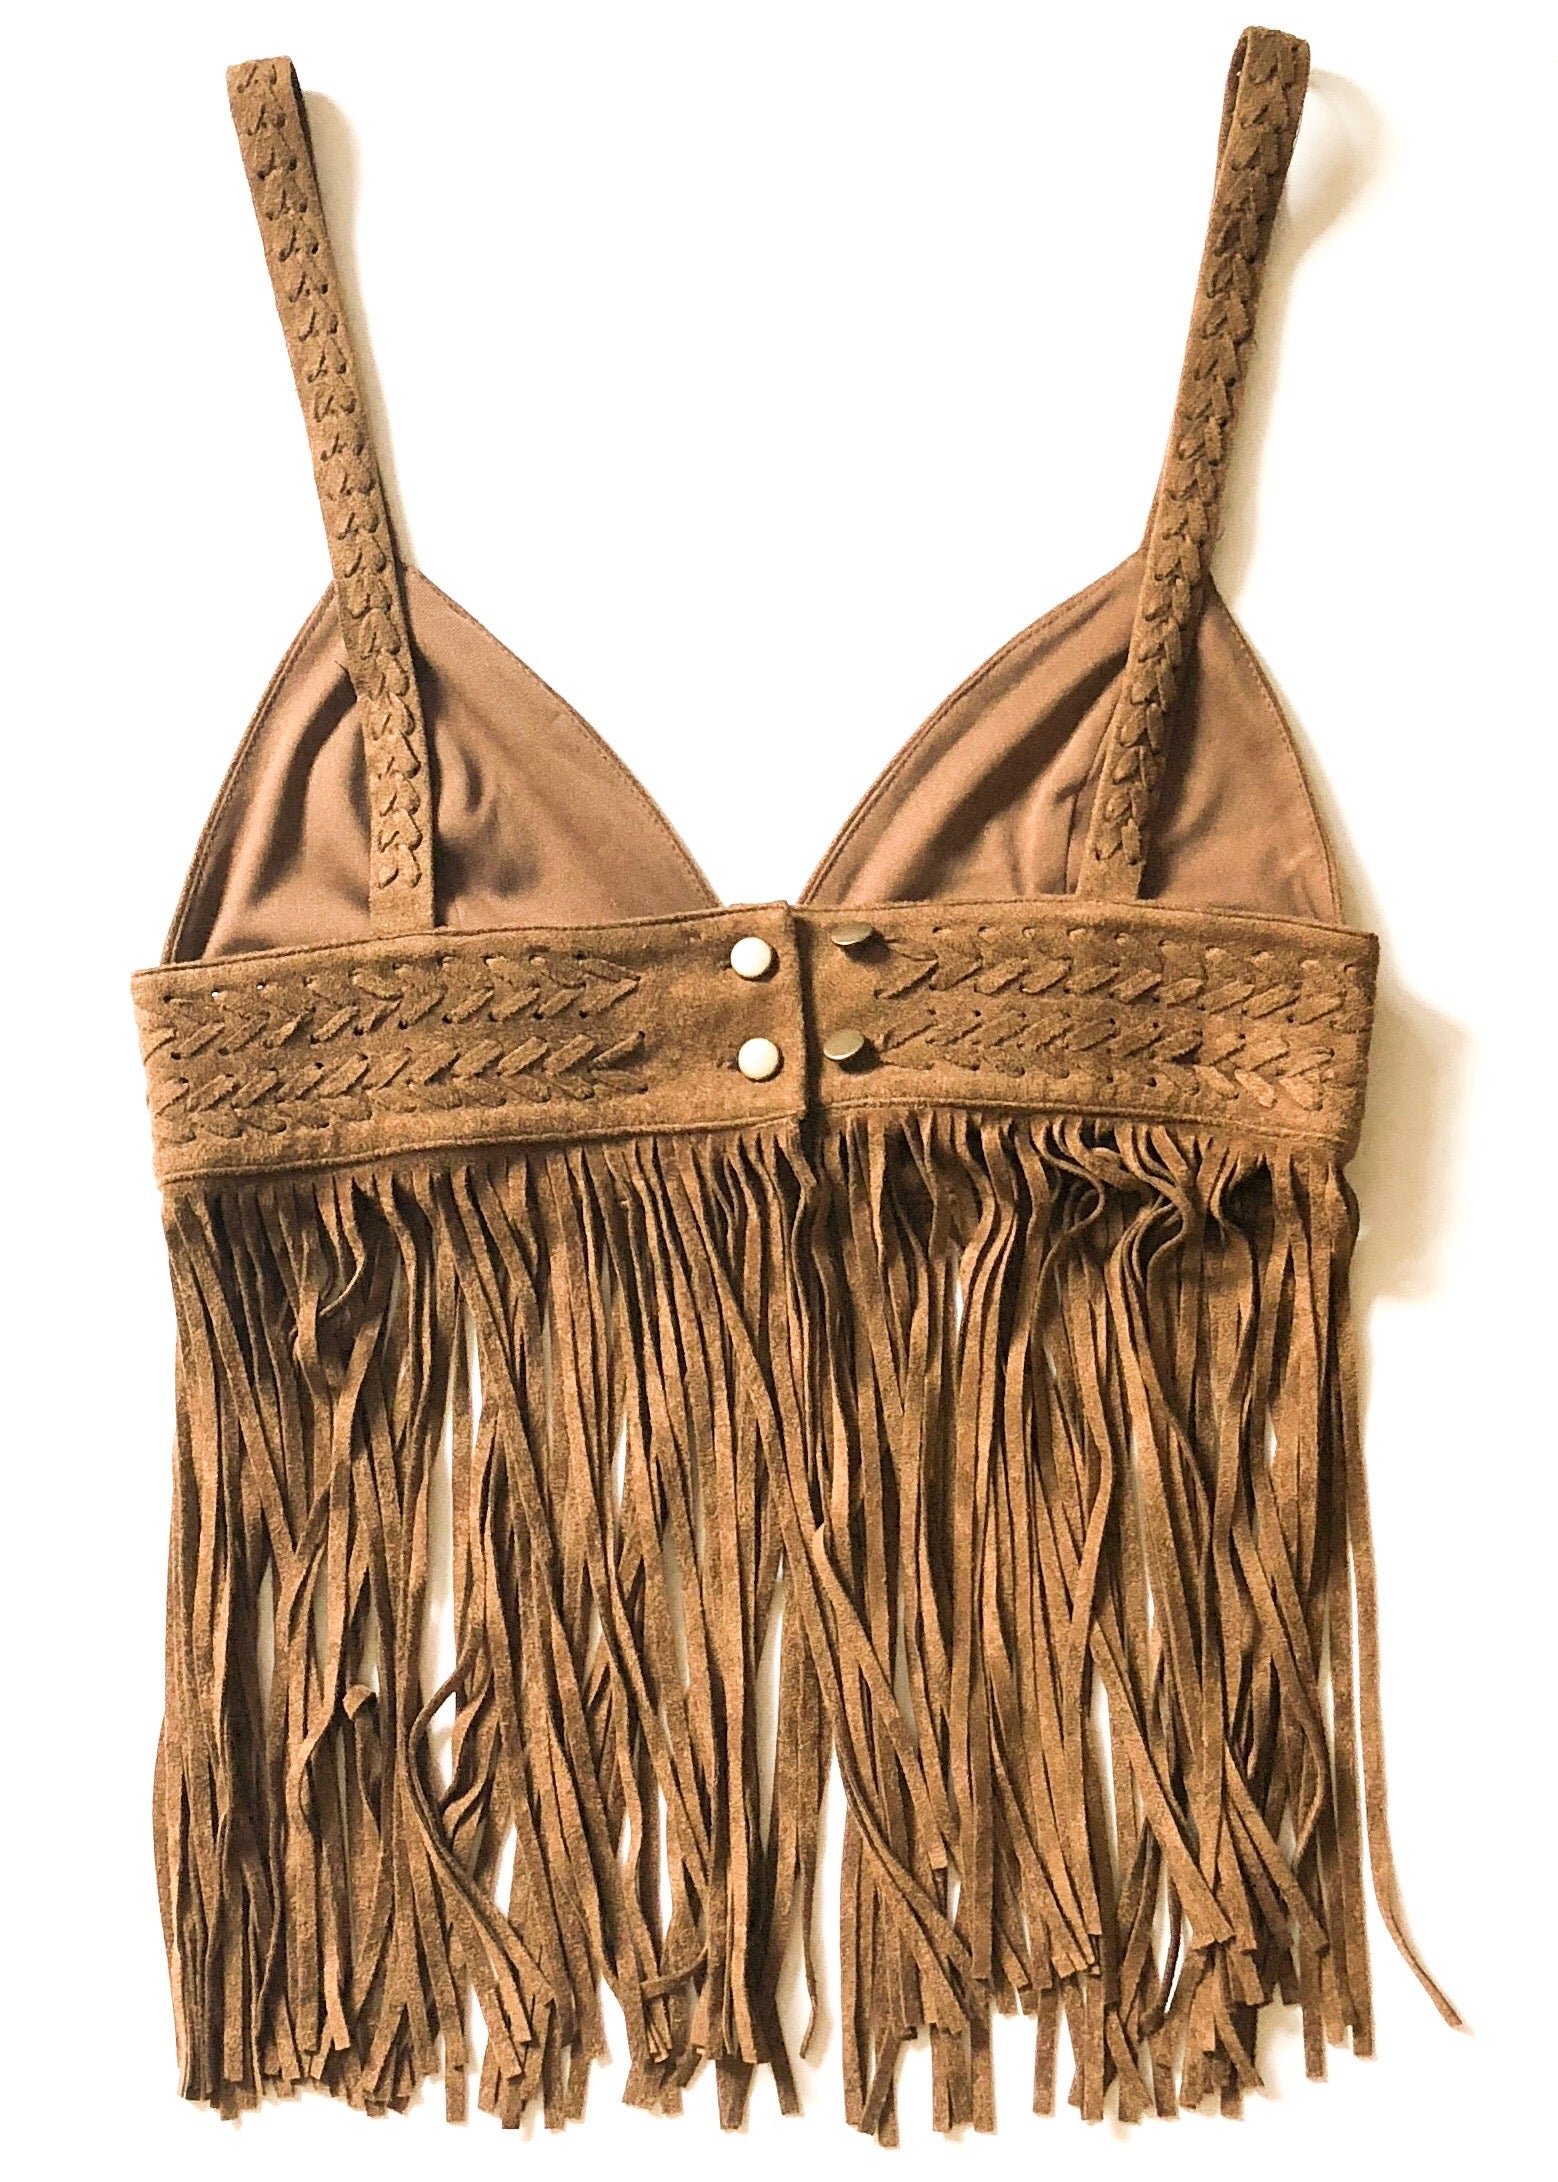 Show Me Your MuMu Calico Fringe Top - Brown Cinnamon Festival Top